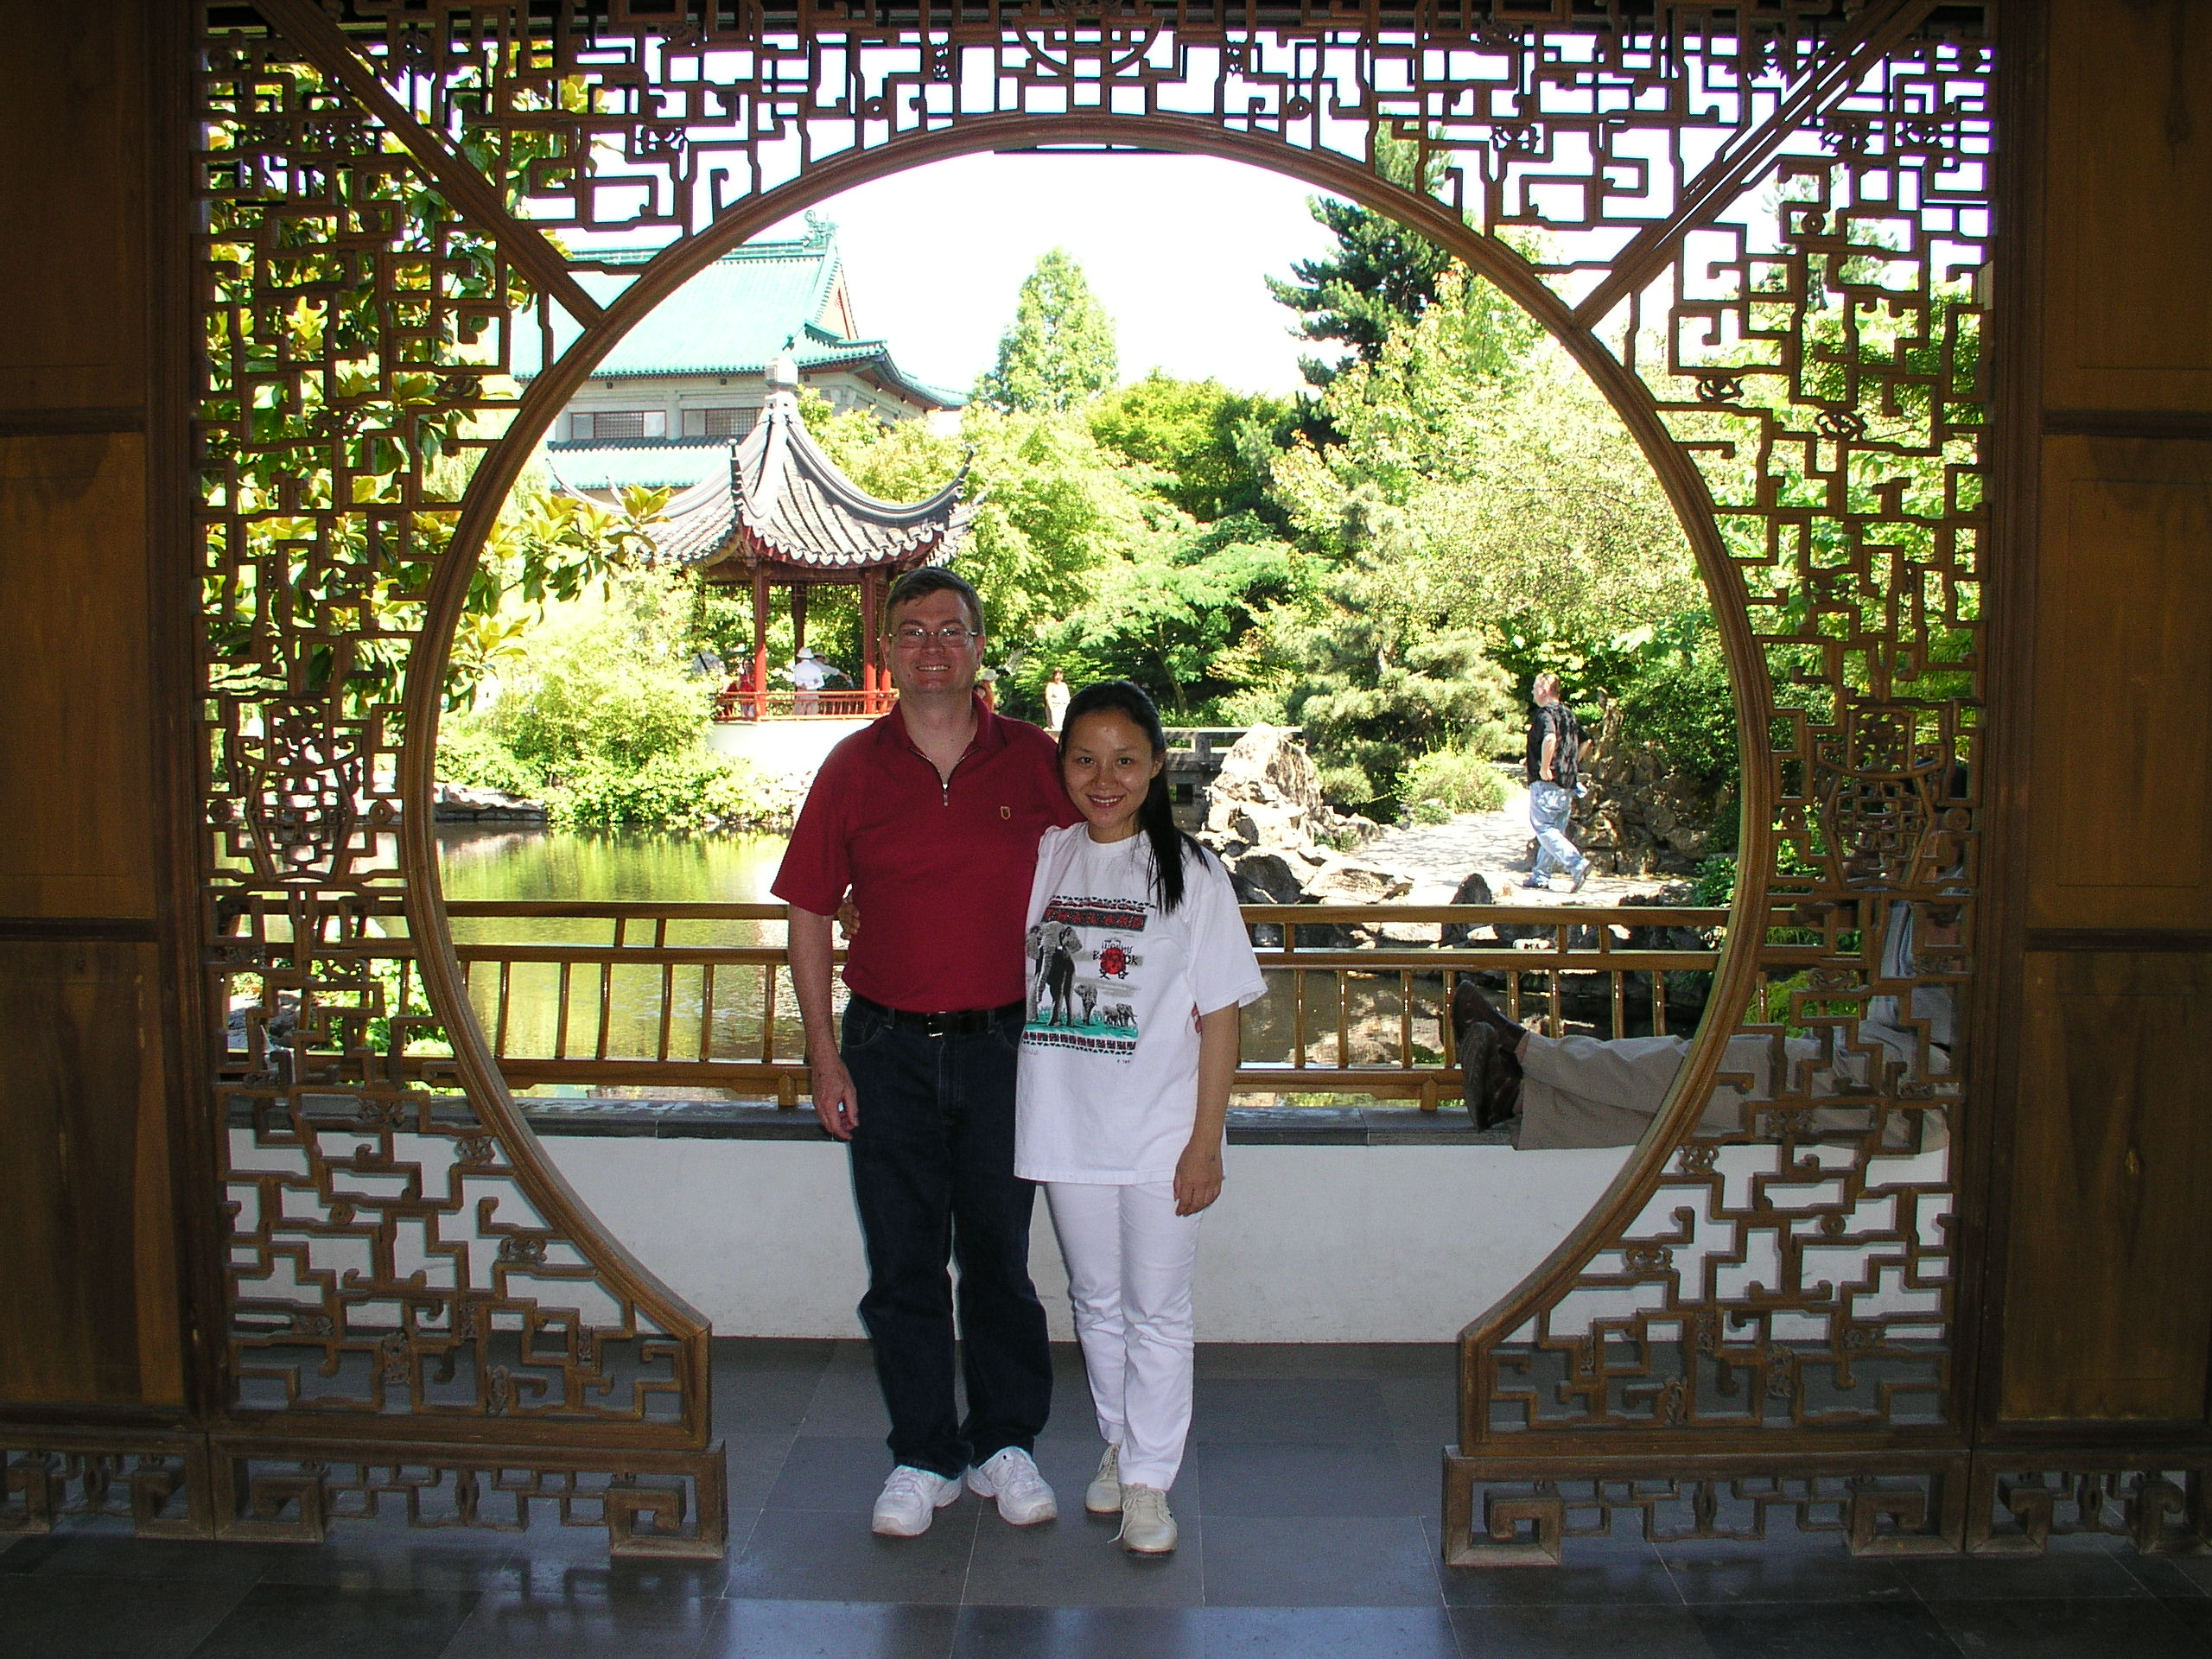 Xin and Karl at Dr. Sun Yat-Sen Classical Chinese Garden, Vancouver, Canada in 2004